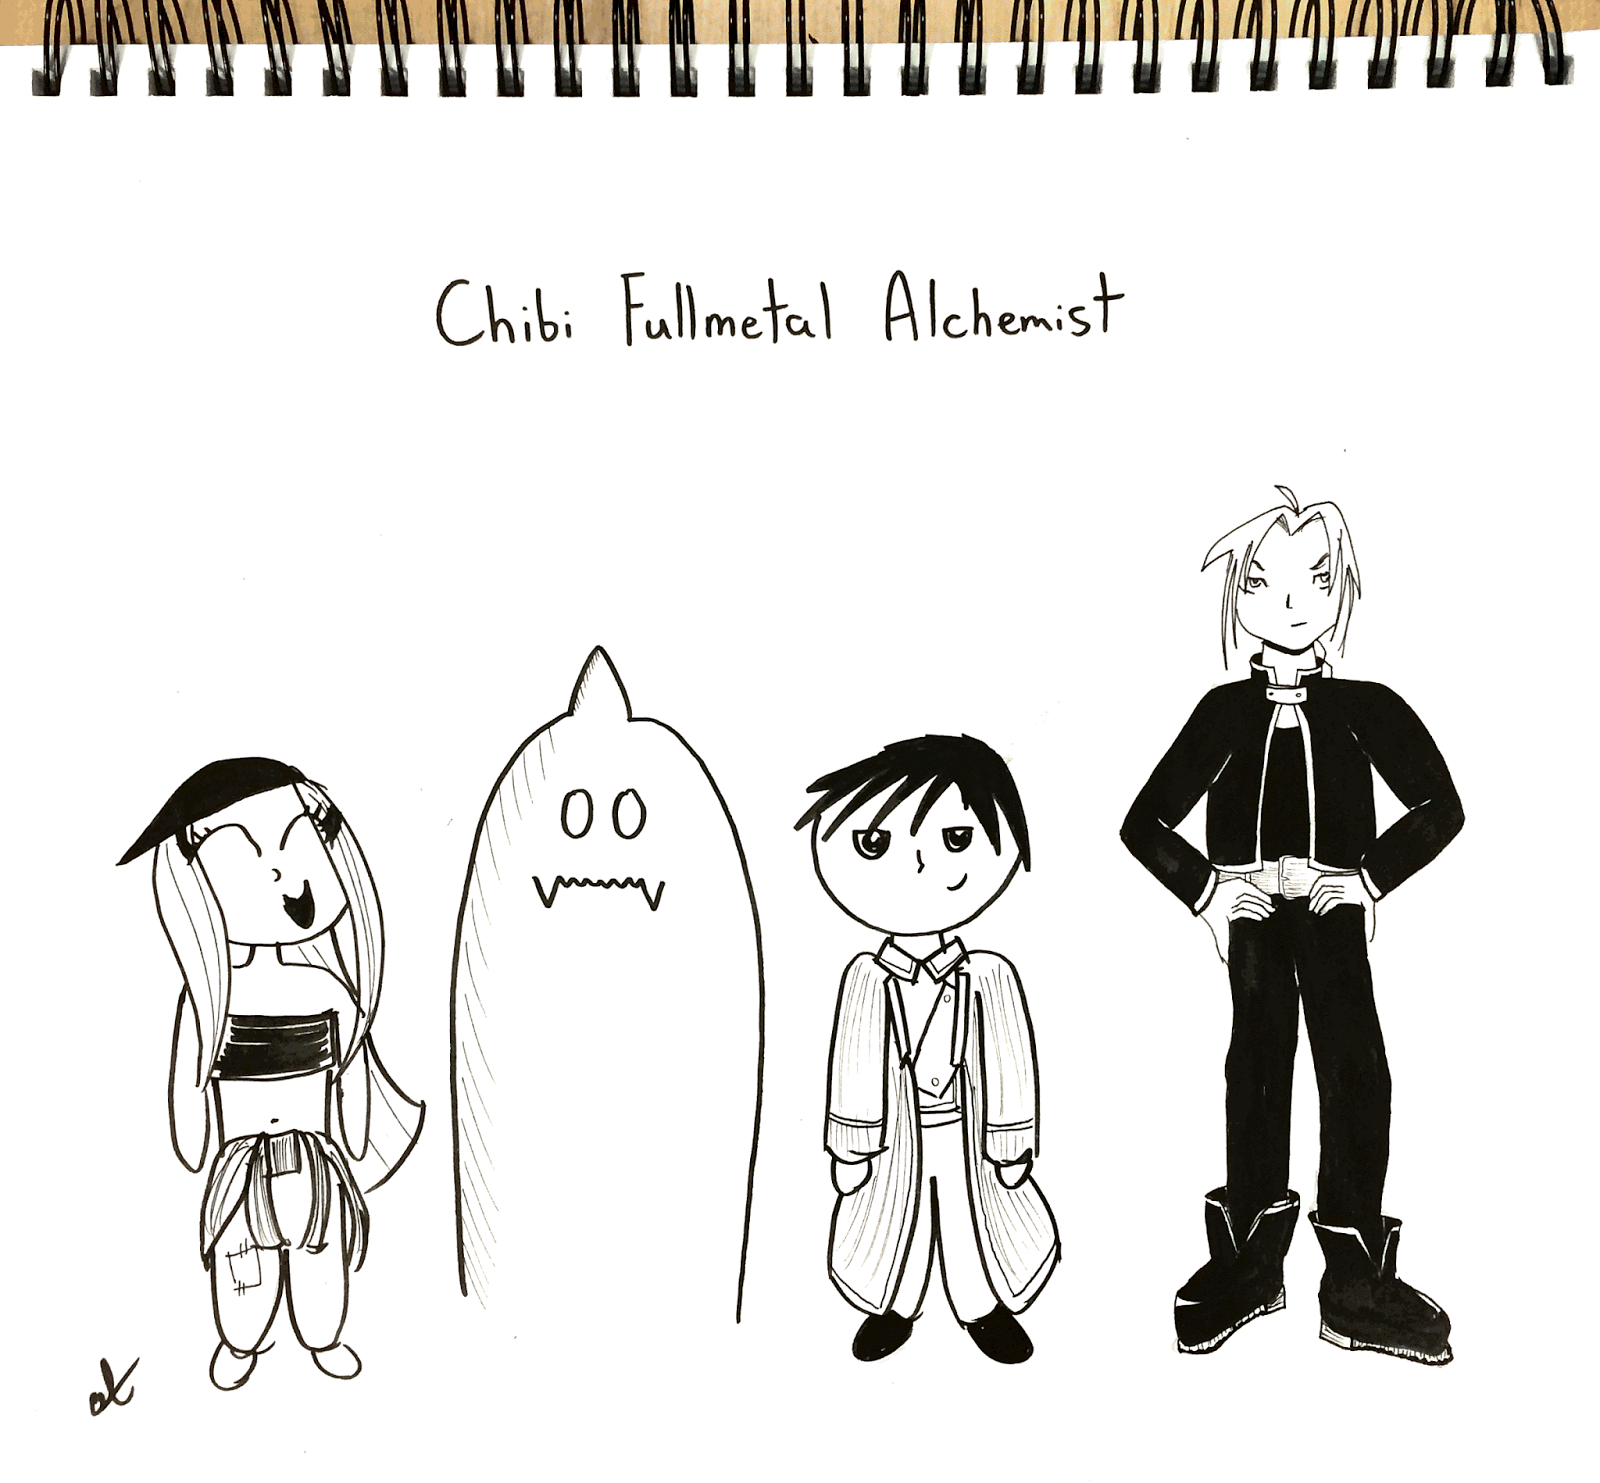 inktober samples annie tohill comic featuring characters from fullmetal alchemist